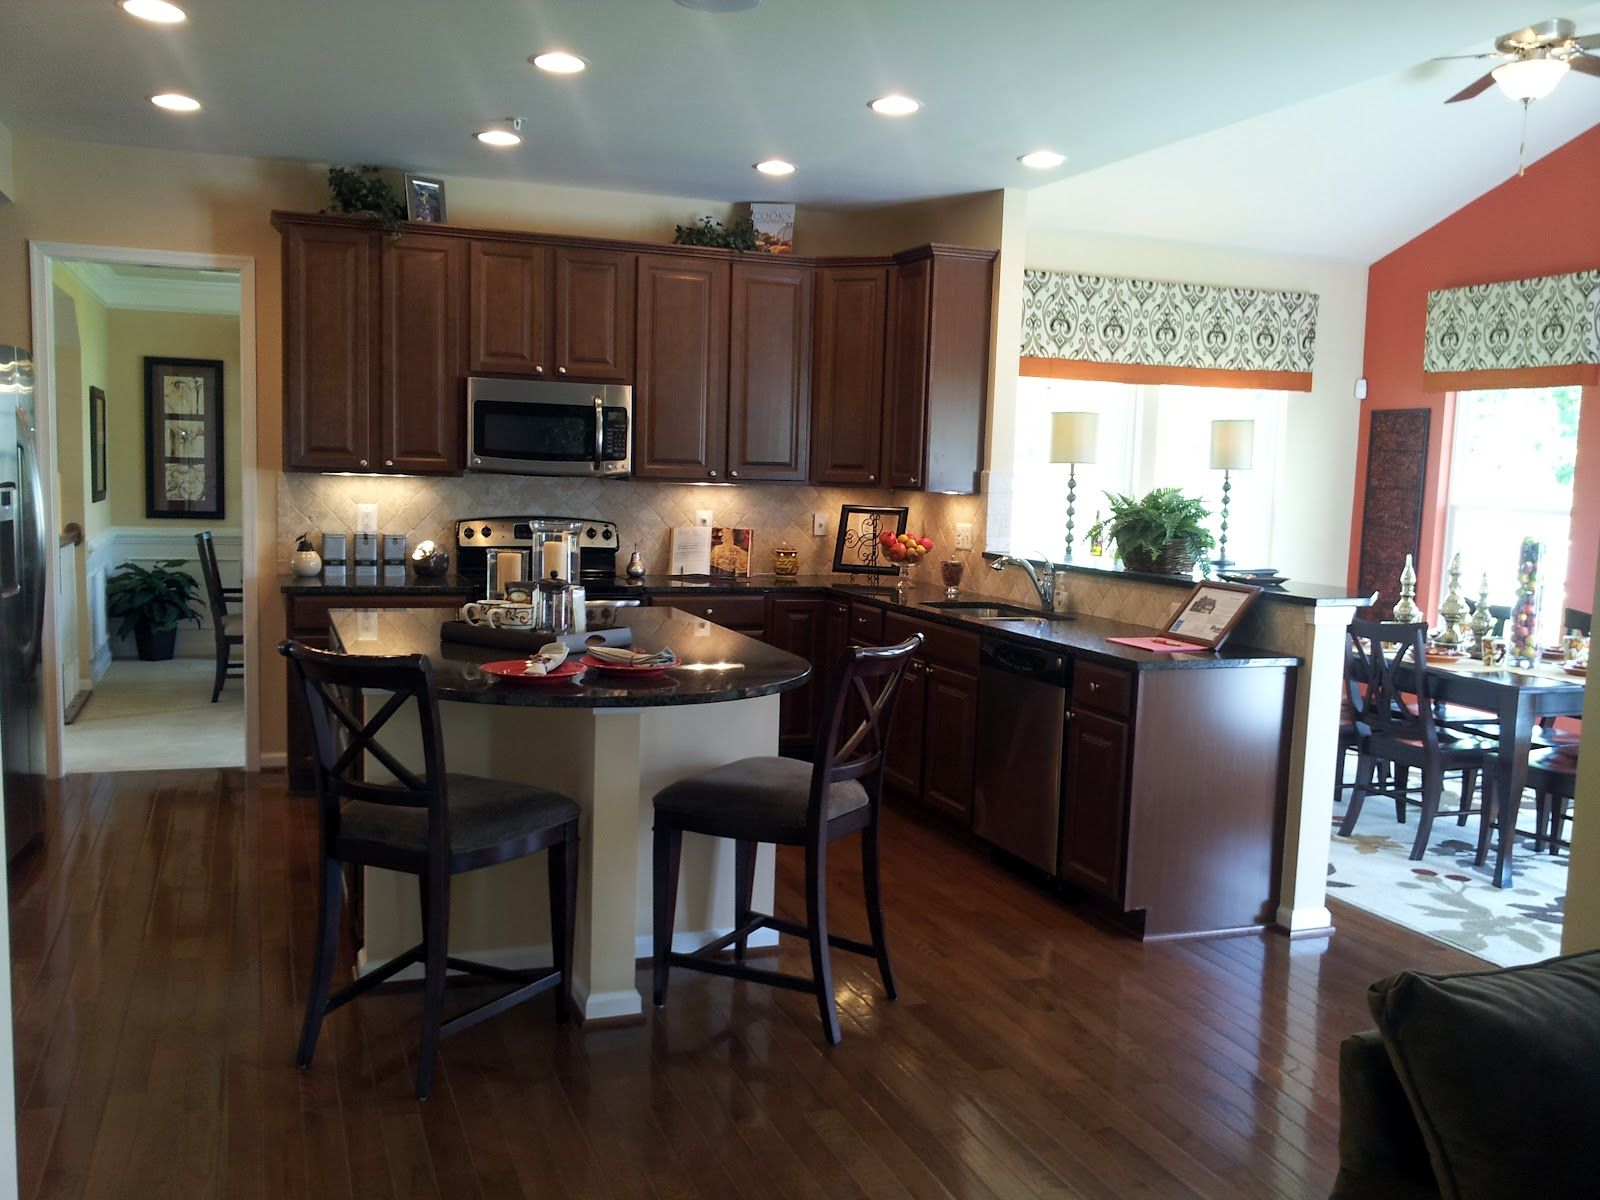 ryan homes kitchens what we love most about the zachary place is